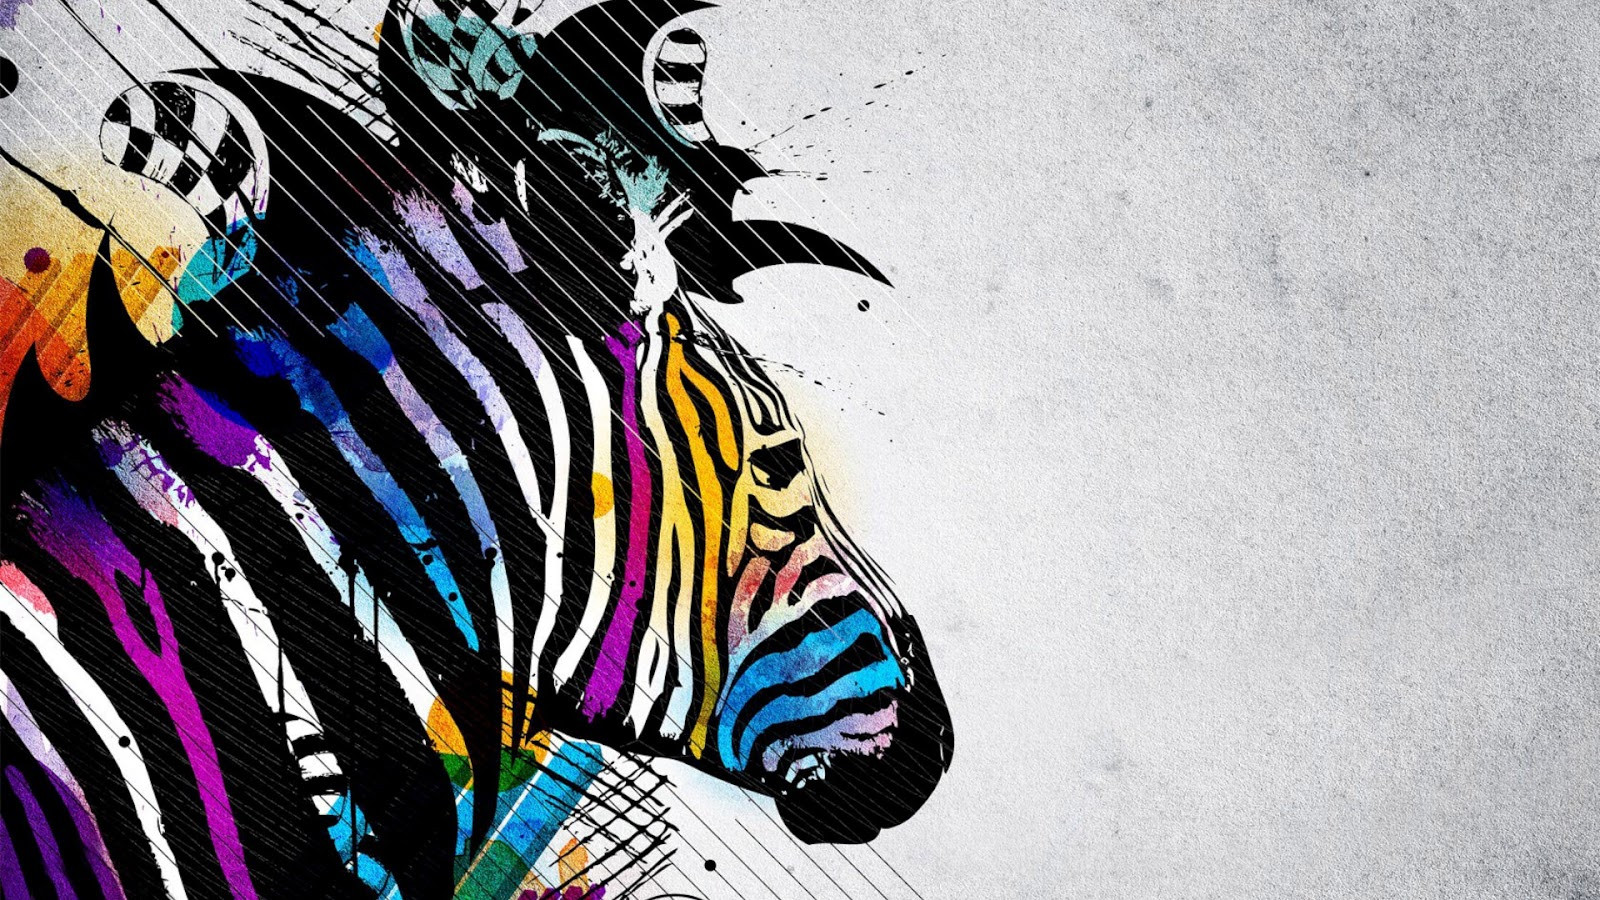 Colorful Zebra Character Vector Art Design